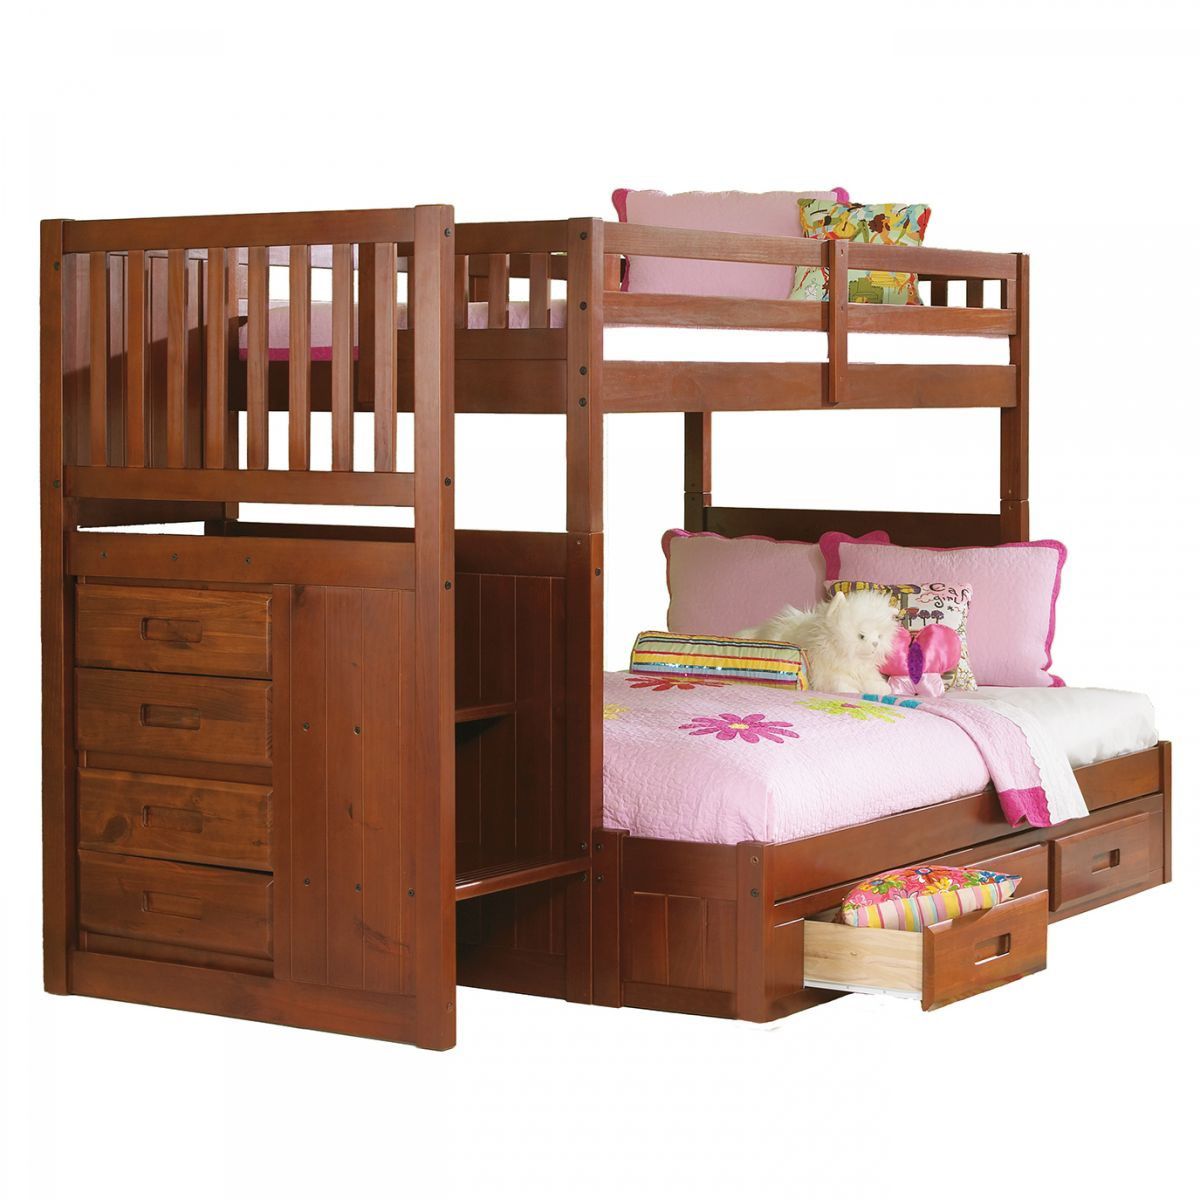 Buy Forrester Twin Full Staircase Bunk Bed Part 2814 1 Badcock More